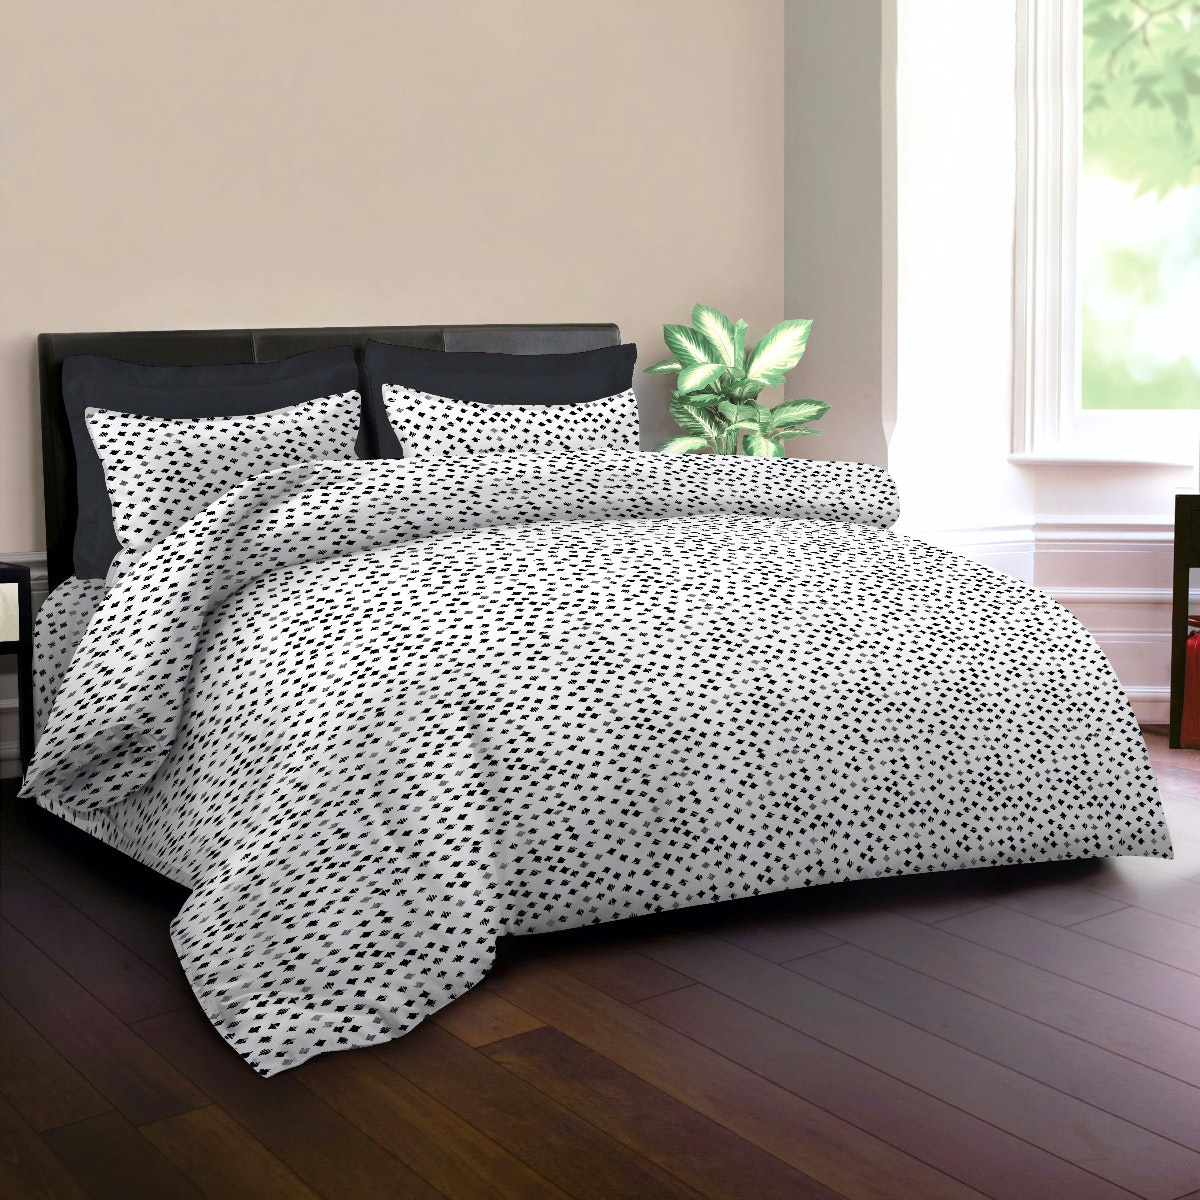 King Rabbit Set Sprei Sarung Bantal King Motif Autograph Sign - Hitam Uk 180x200x40 cm